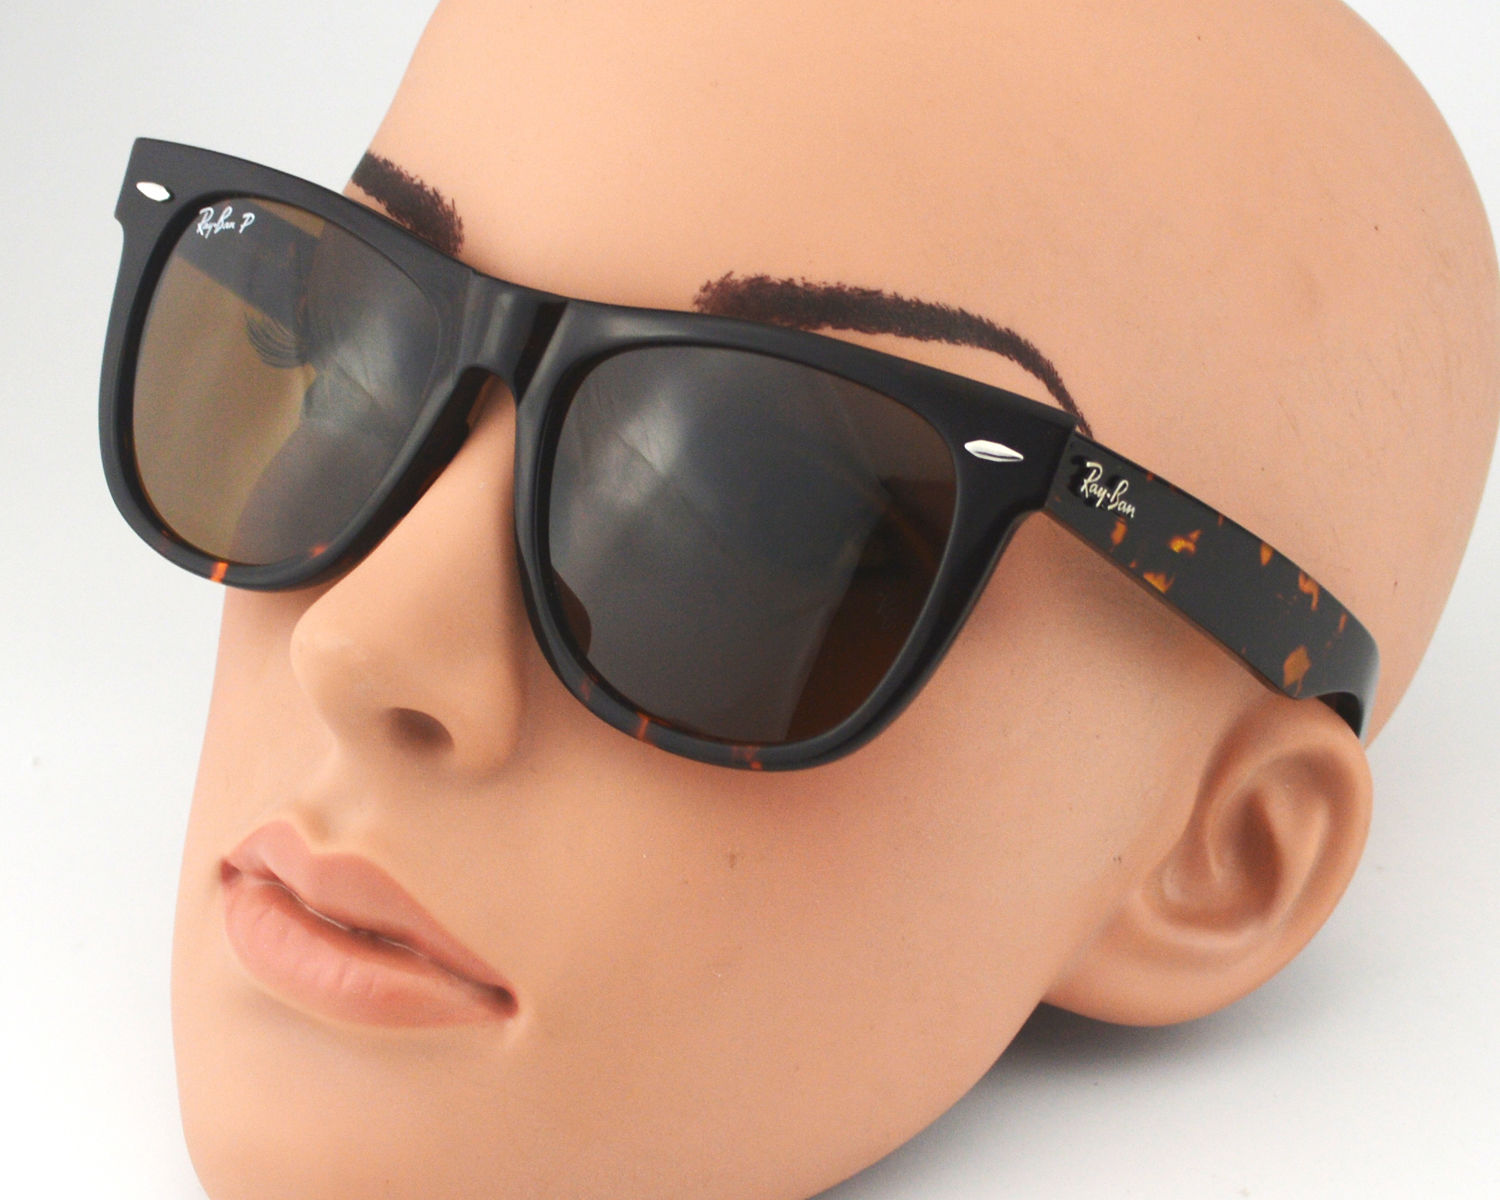 ray ban original wayfarer 2140 polarized